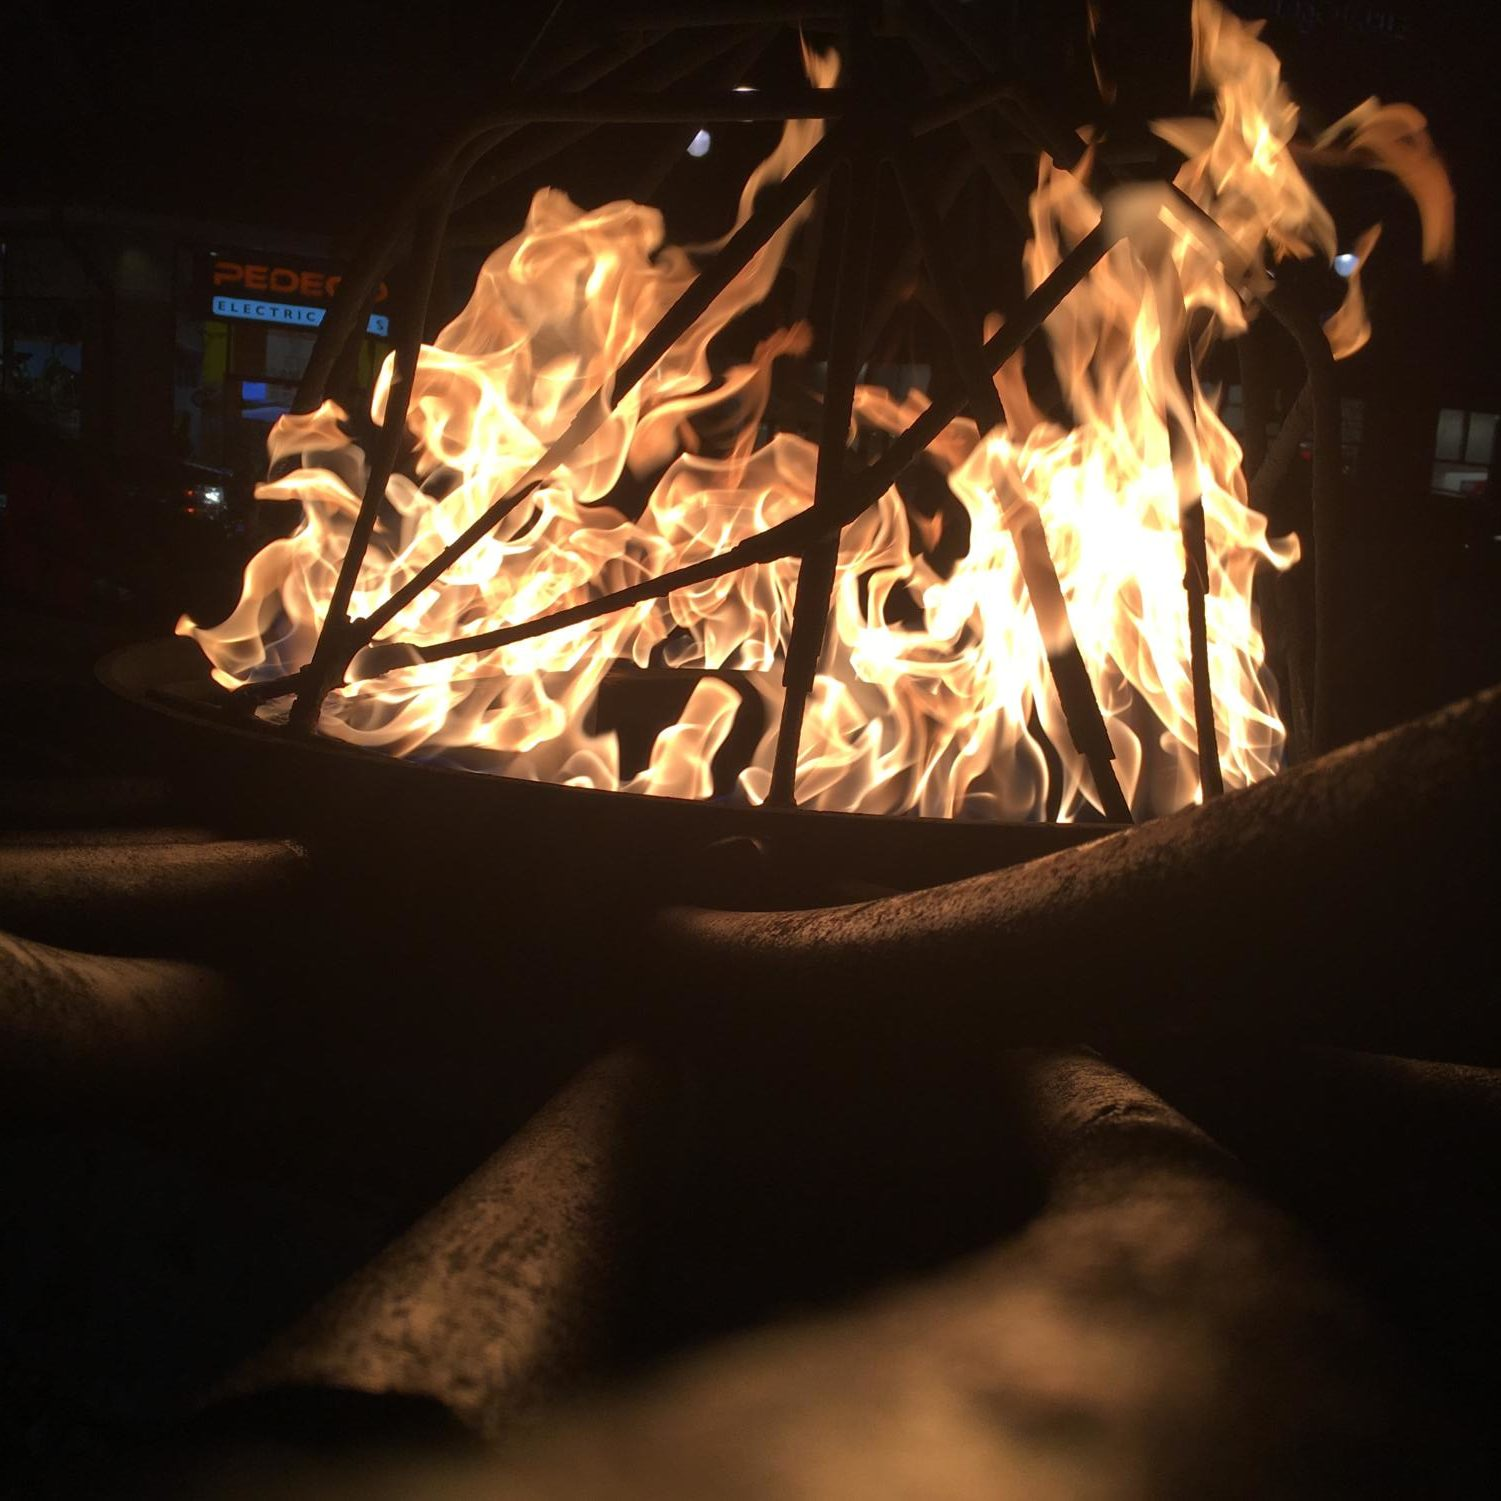 A fire pit burns at Southlands Mall in Aurora, Colorado. Column author, Rin Jackson, took this photo years ago when she lived near there.  Flames are a symbol for Complex Regional Pain Syndrome, as burning alive is considered a comparable pain.